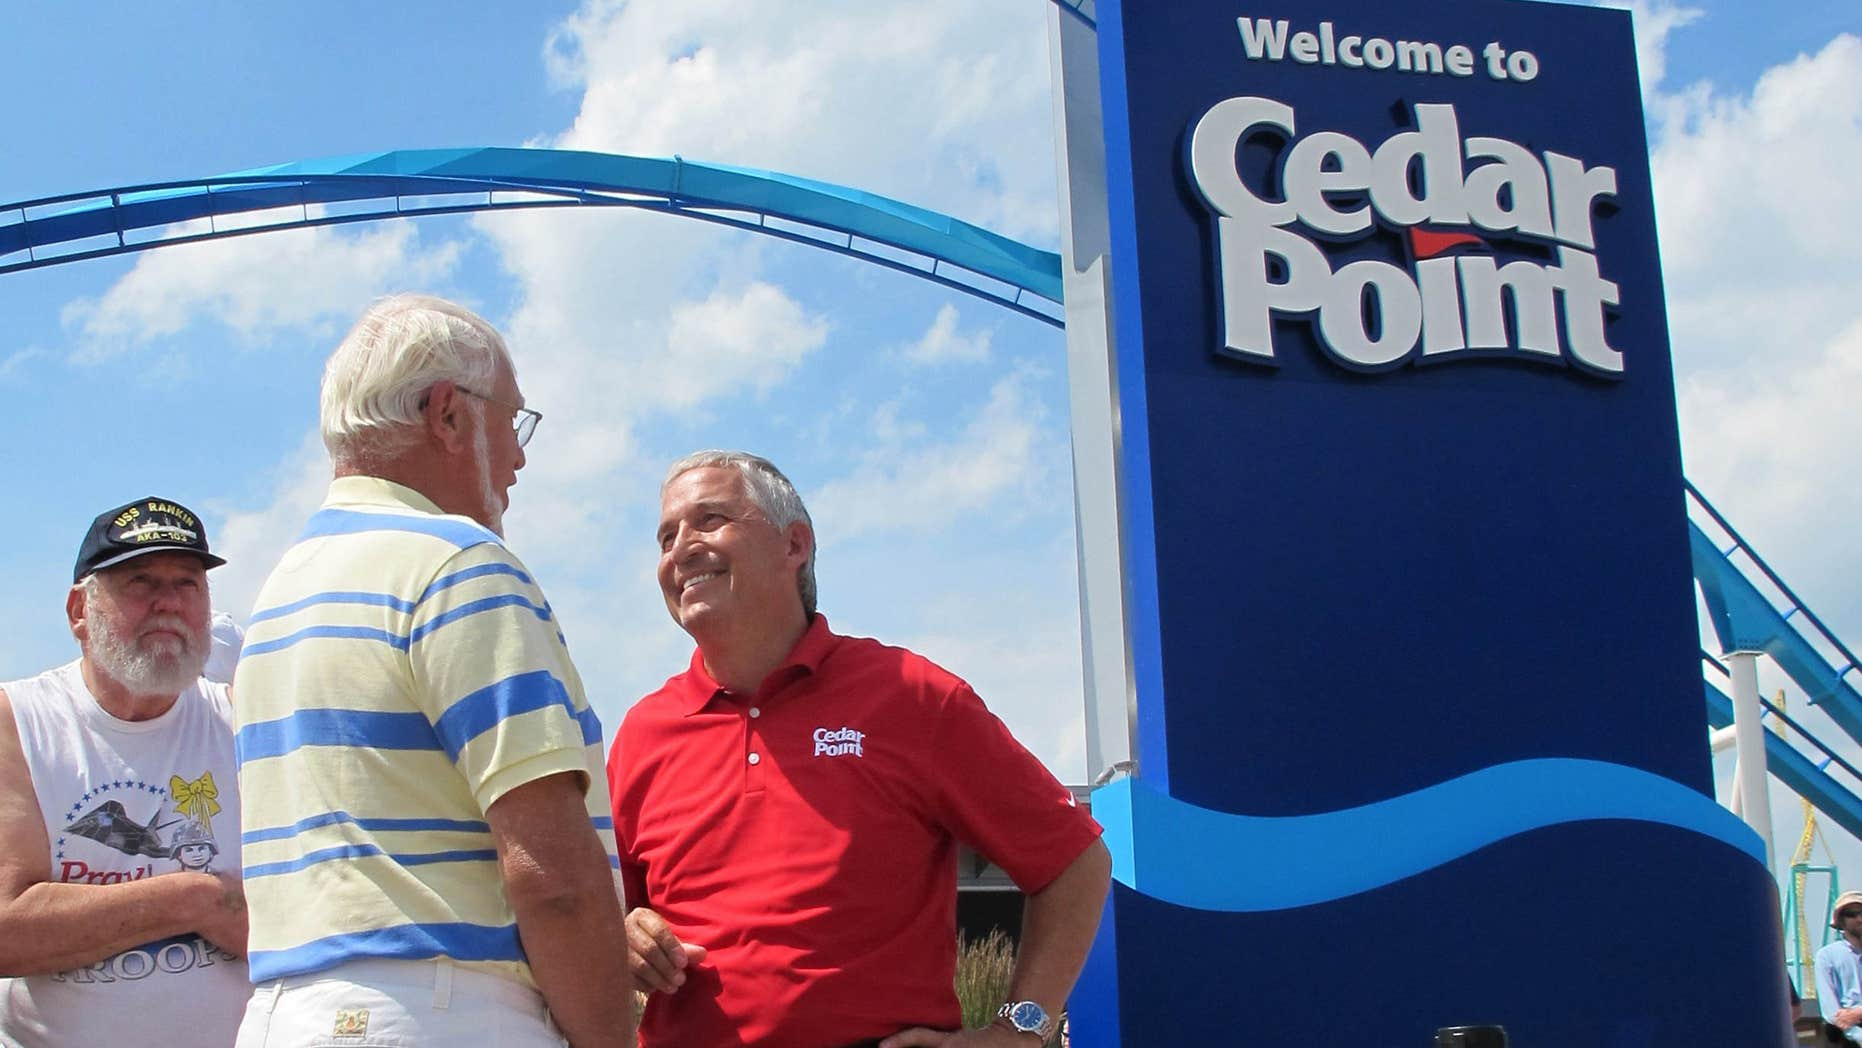 July 2, 2014: Matt Ouimet, chief executive of Cedar Fair Entertainment Co., greets a guest at Cedar Point amusement park, in Sandusky, Ohio.